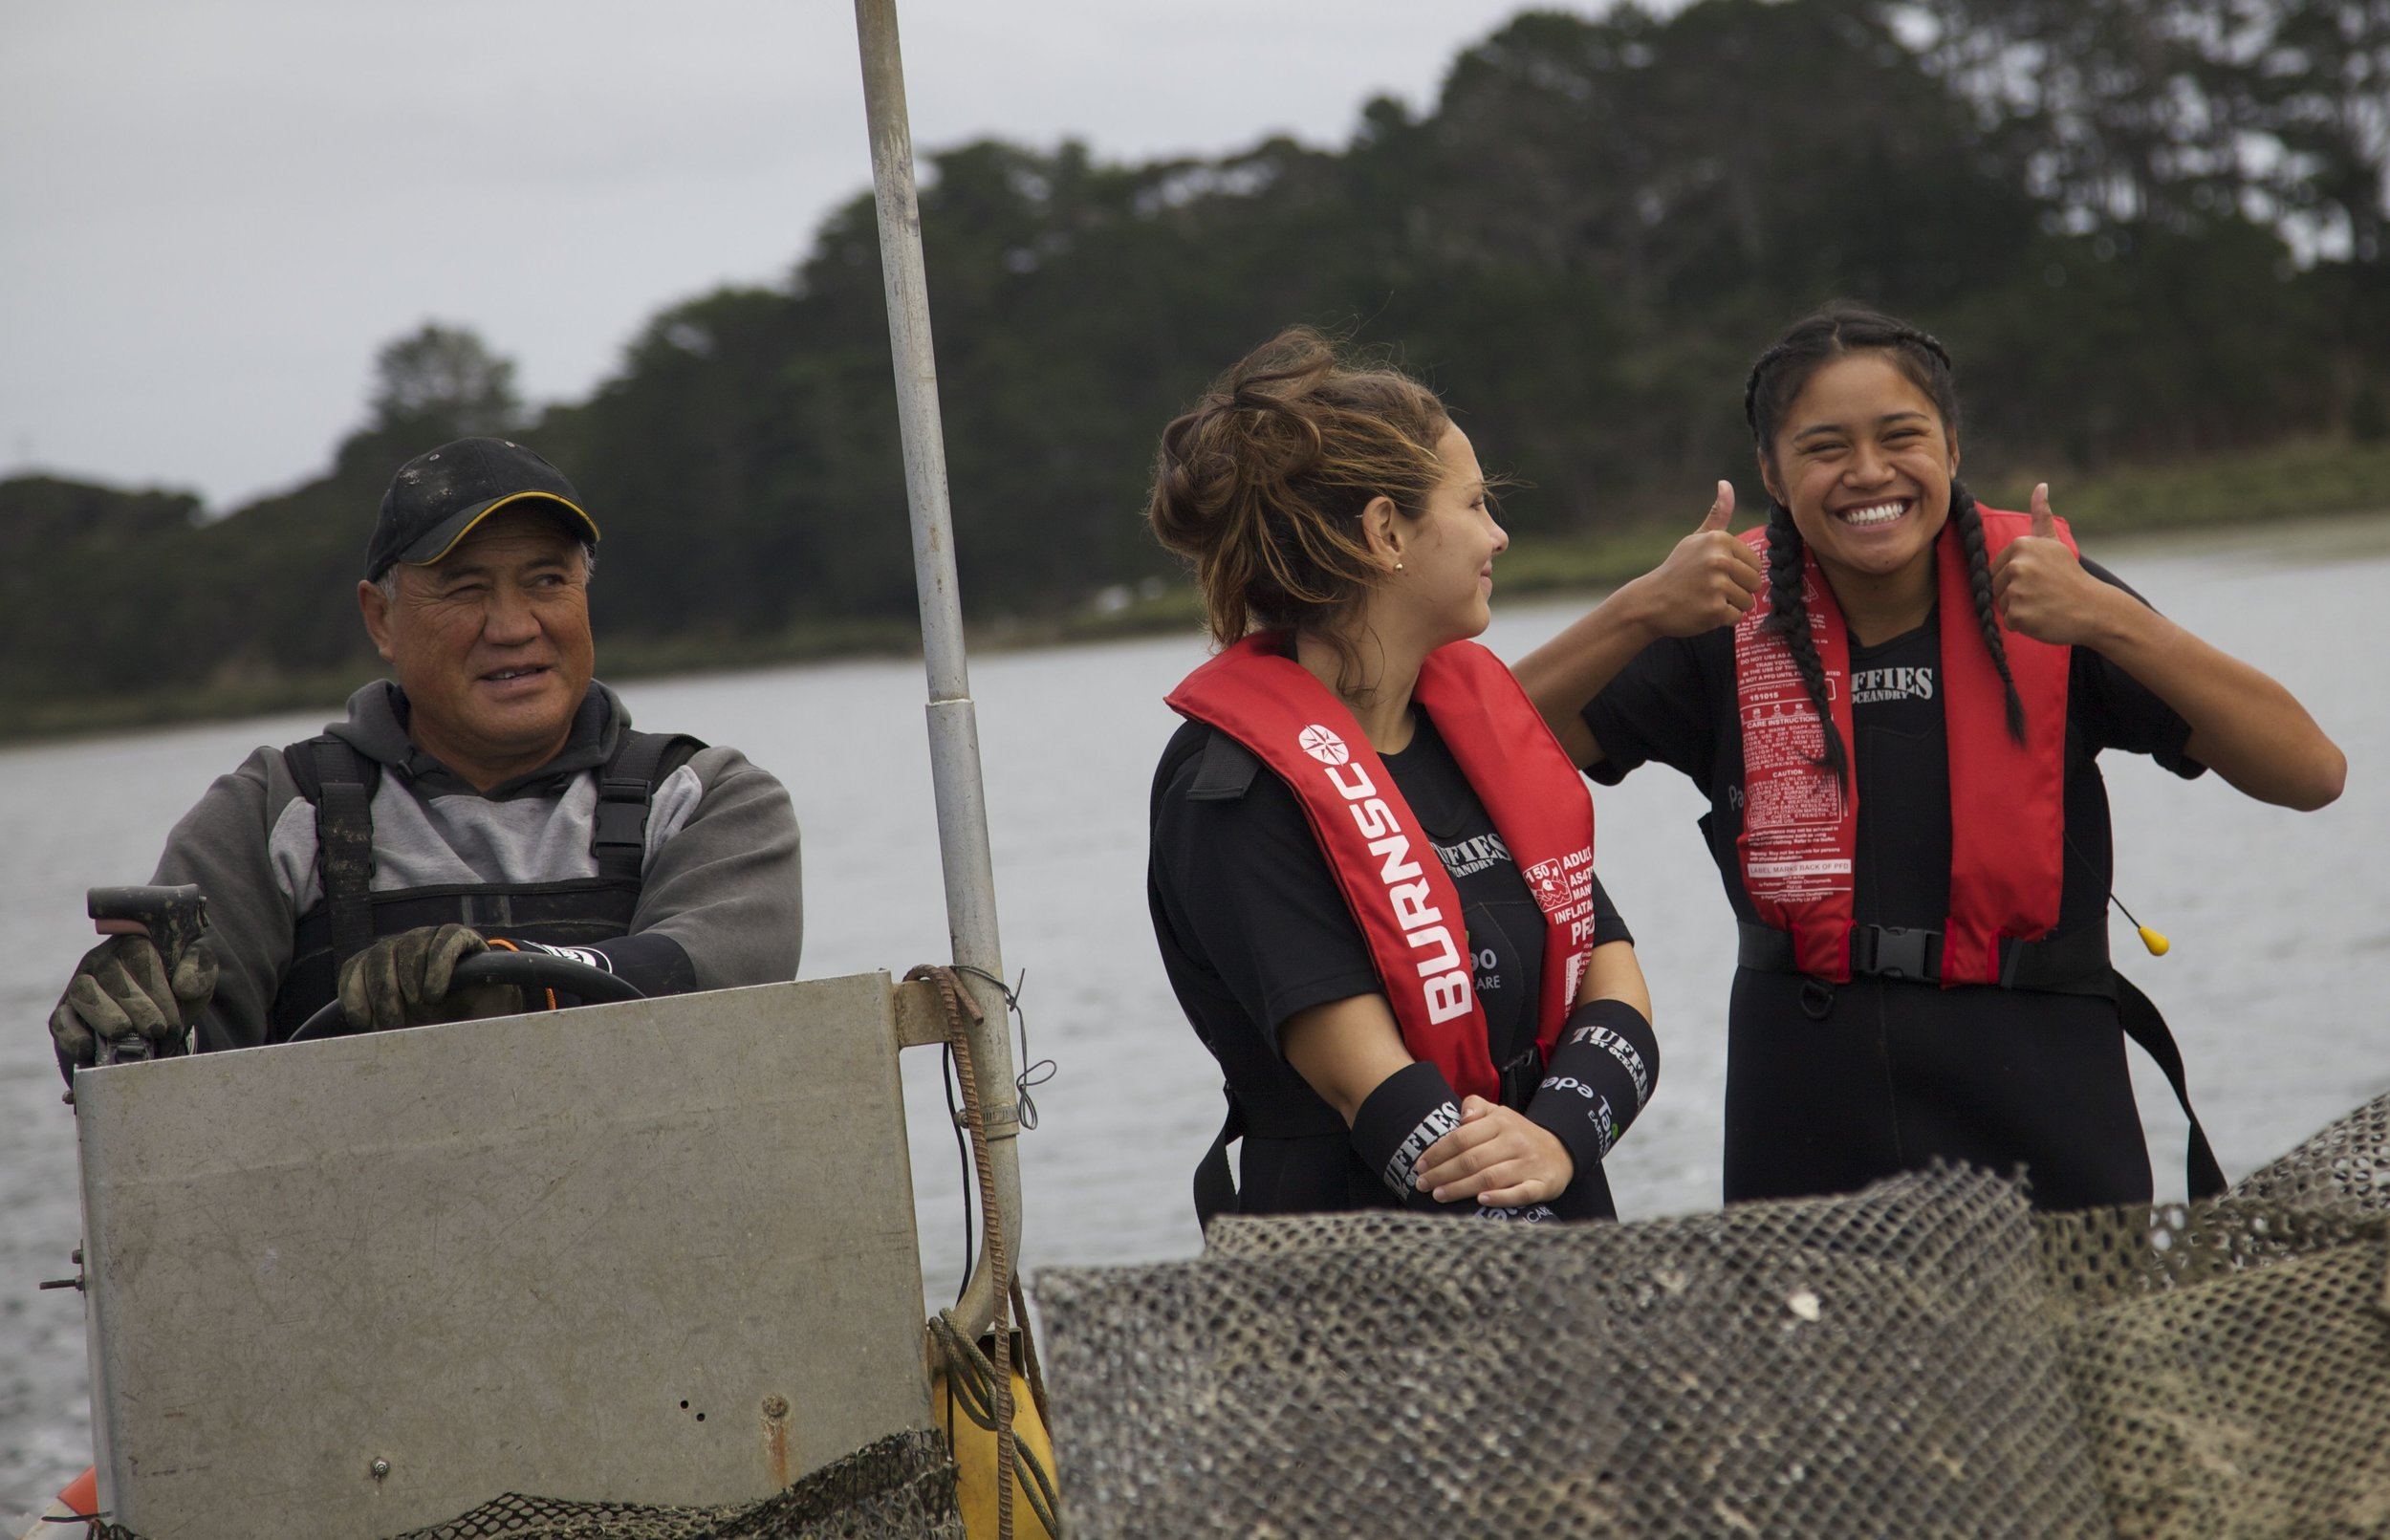 The  Papa Taiao Kaitaia Academy  focusses on  Moana  Restoration. Students are involved in establishing a small oyster farm in conjunction with Pacific Marine Fisheries in the Parengarenga Harbour. The proceeds from the sale of their oysters will be returned to Kaitaia youth involved in environmental restoration.   Tauira (students) from the  Papa Taiao Kaitaia Academy  are involved several sustainability projects including producing a Marine Conservation and Education aquarium for schools and kura. The  Moana Restoration students are working with the five  Iwi  forum in the Far North and MPI to use customary fishing rights to re-establish lost  Kutai  (mussel) beds on the East Coast.    Papa Taiao Kaitaia  offers students the opportunity to gain NCEA qualifications in aquaculture, business studies, sustainability and biology.